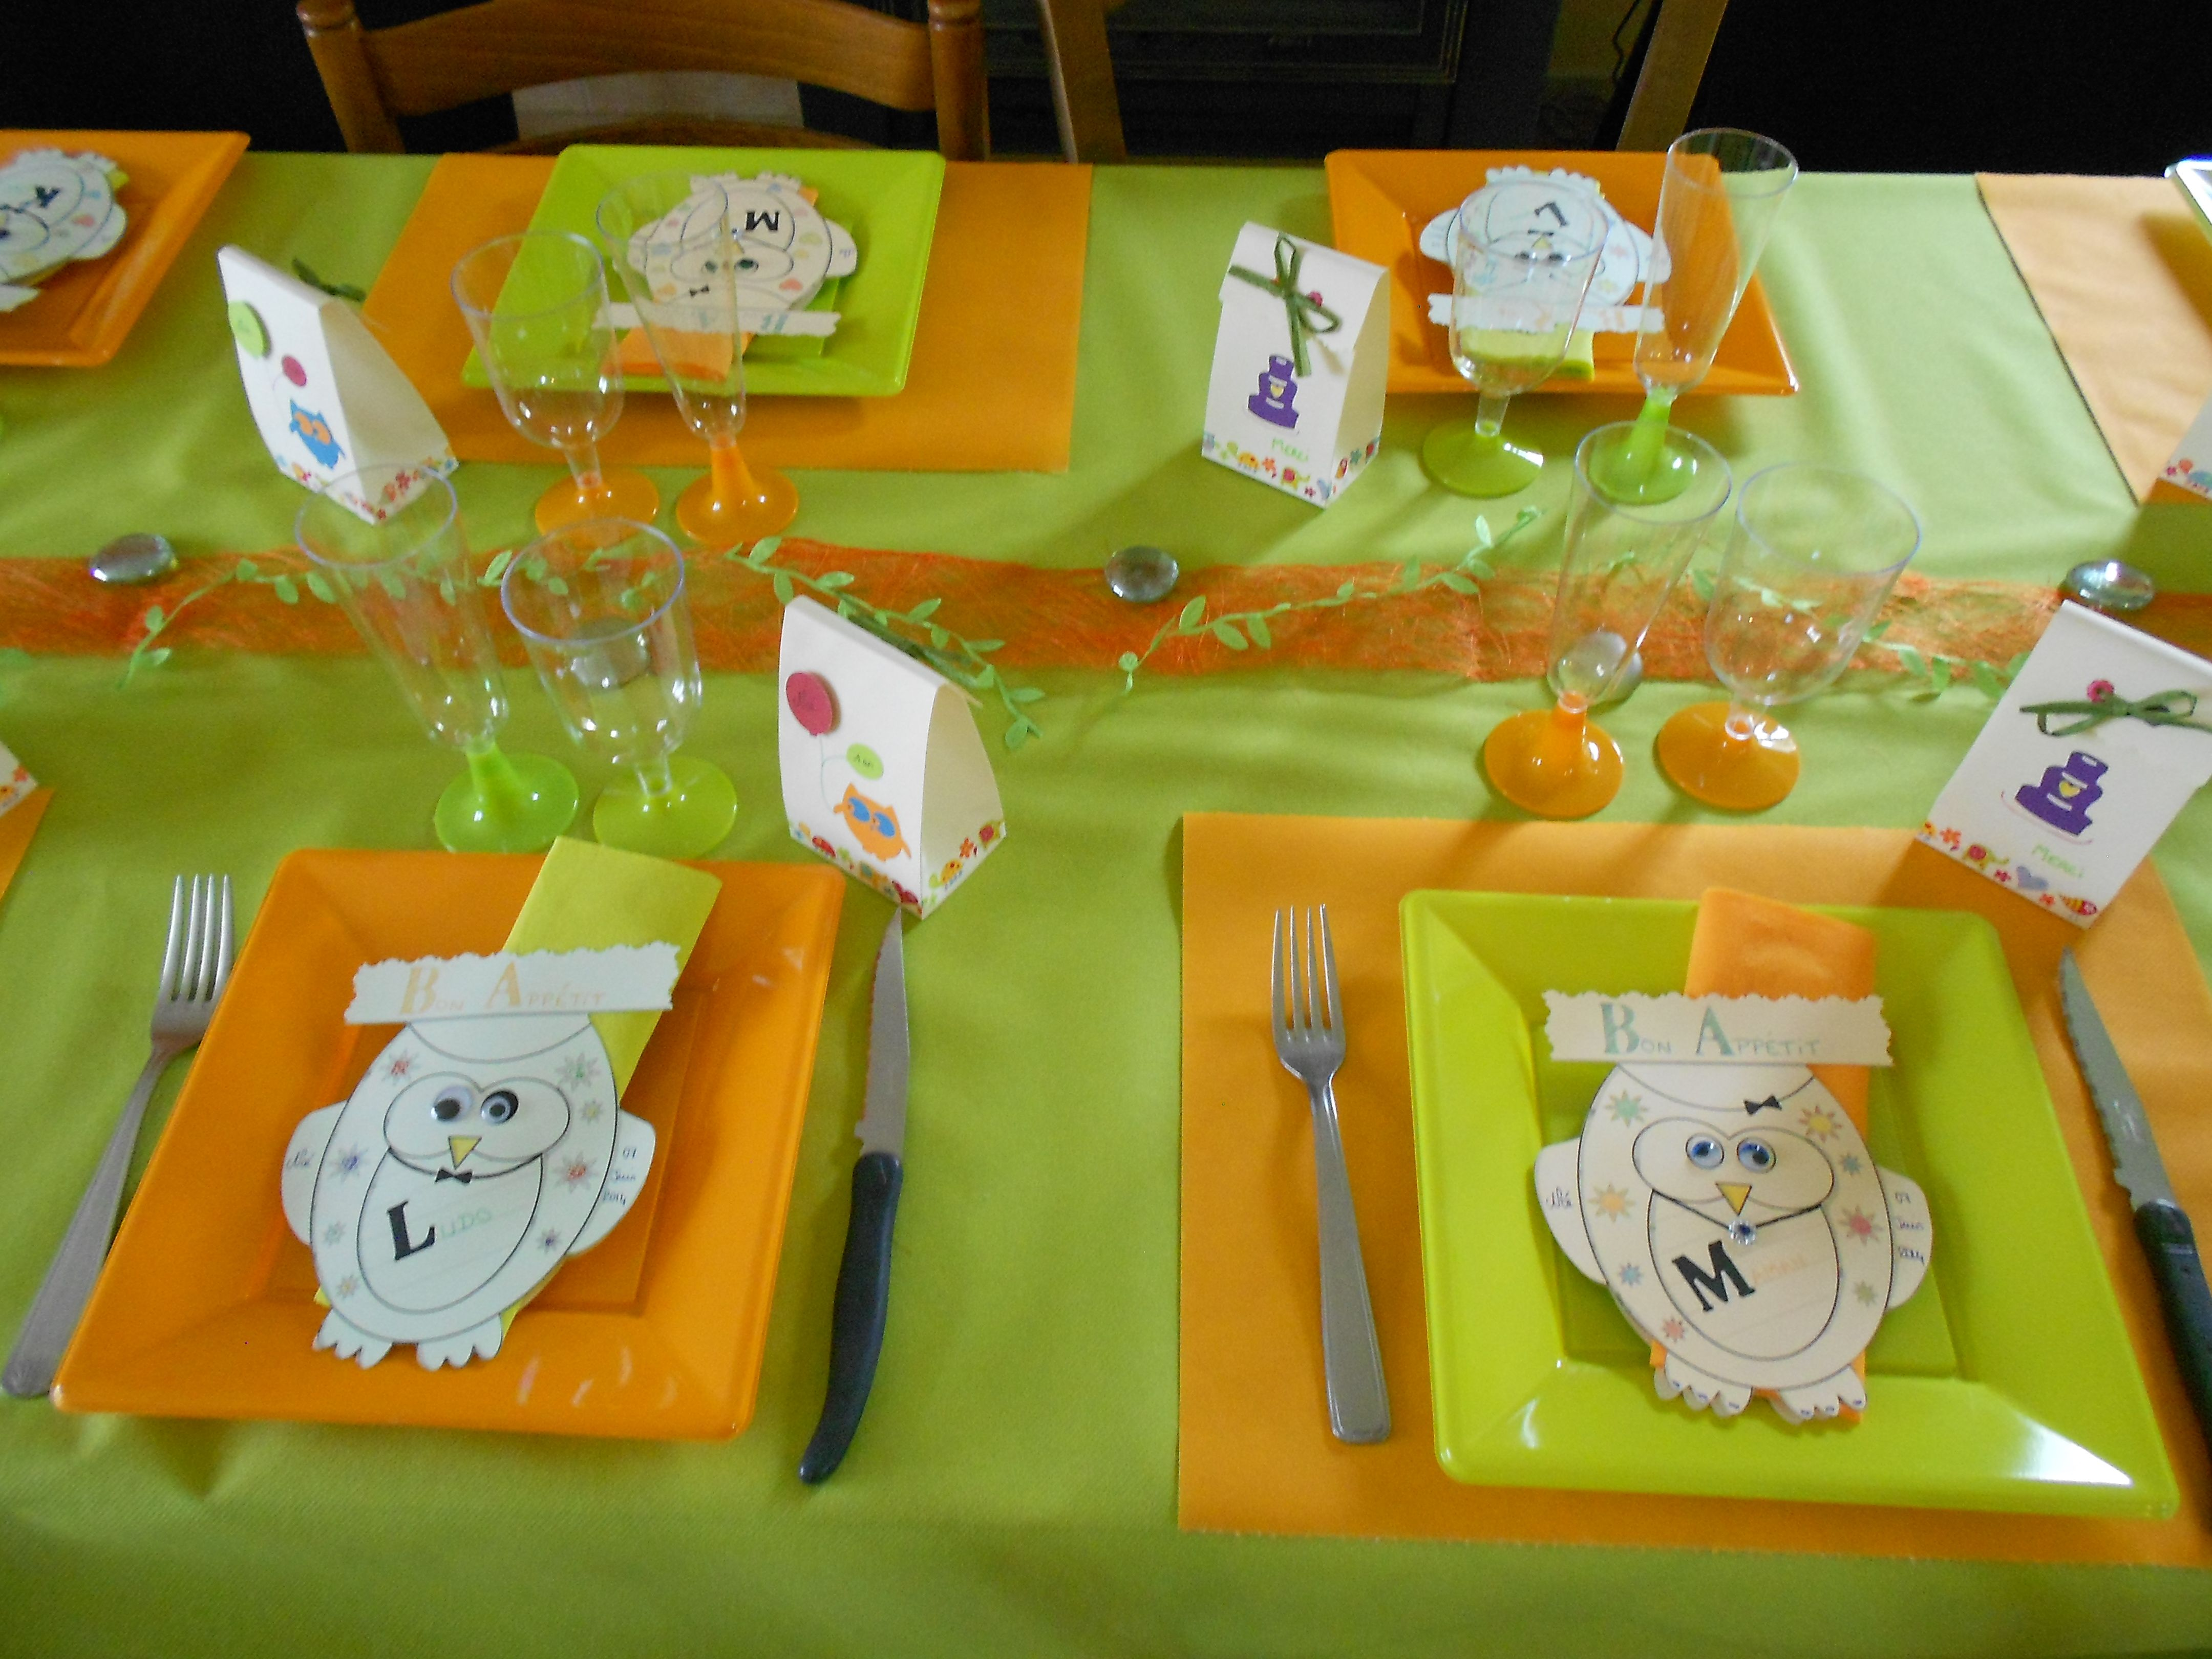 d 233 co table anniversaire 1 an th 232 me chouette par p t oeuf chouette hibou